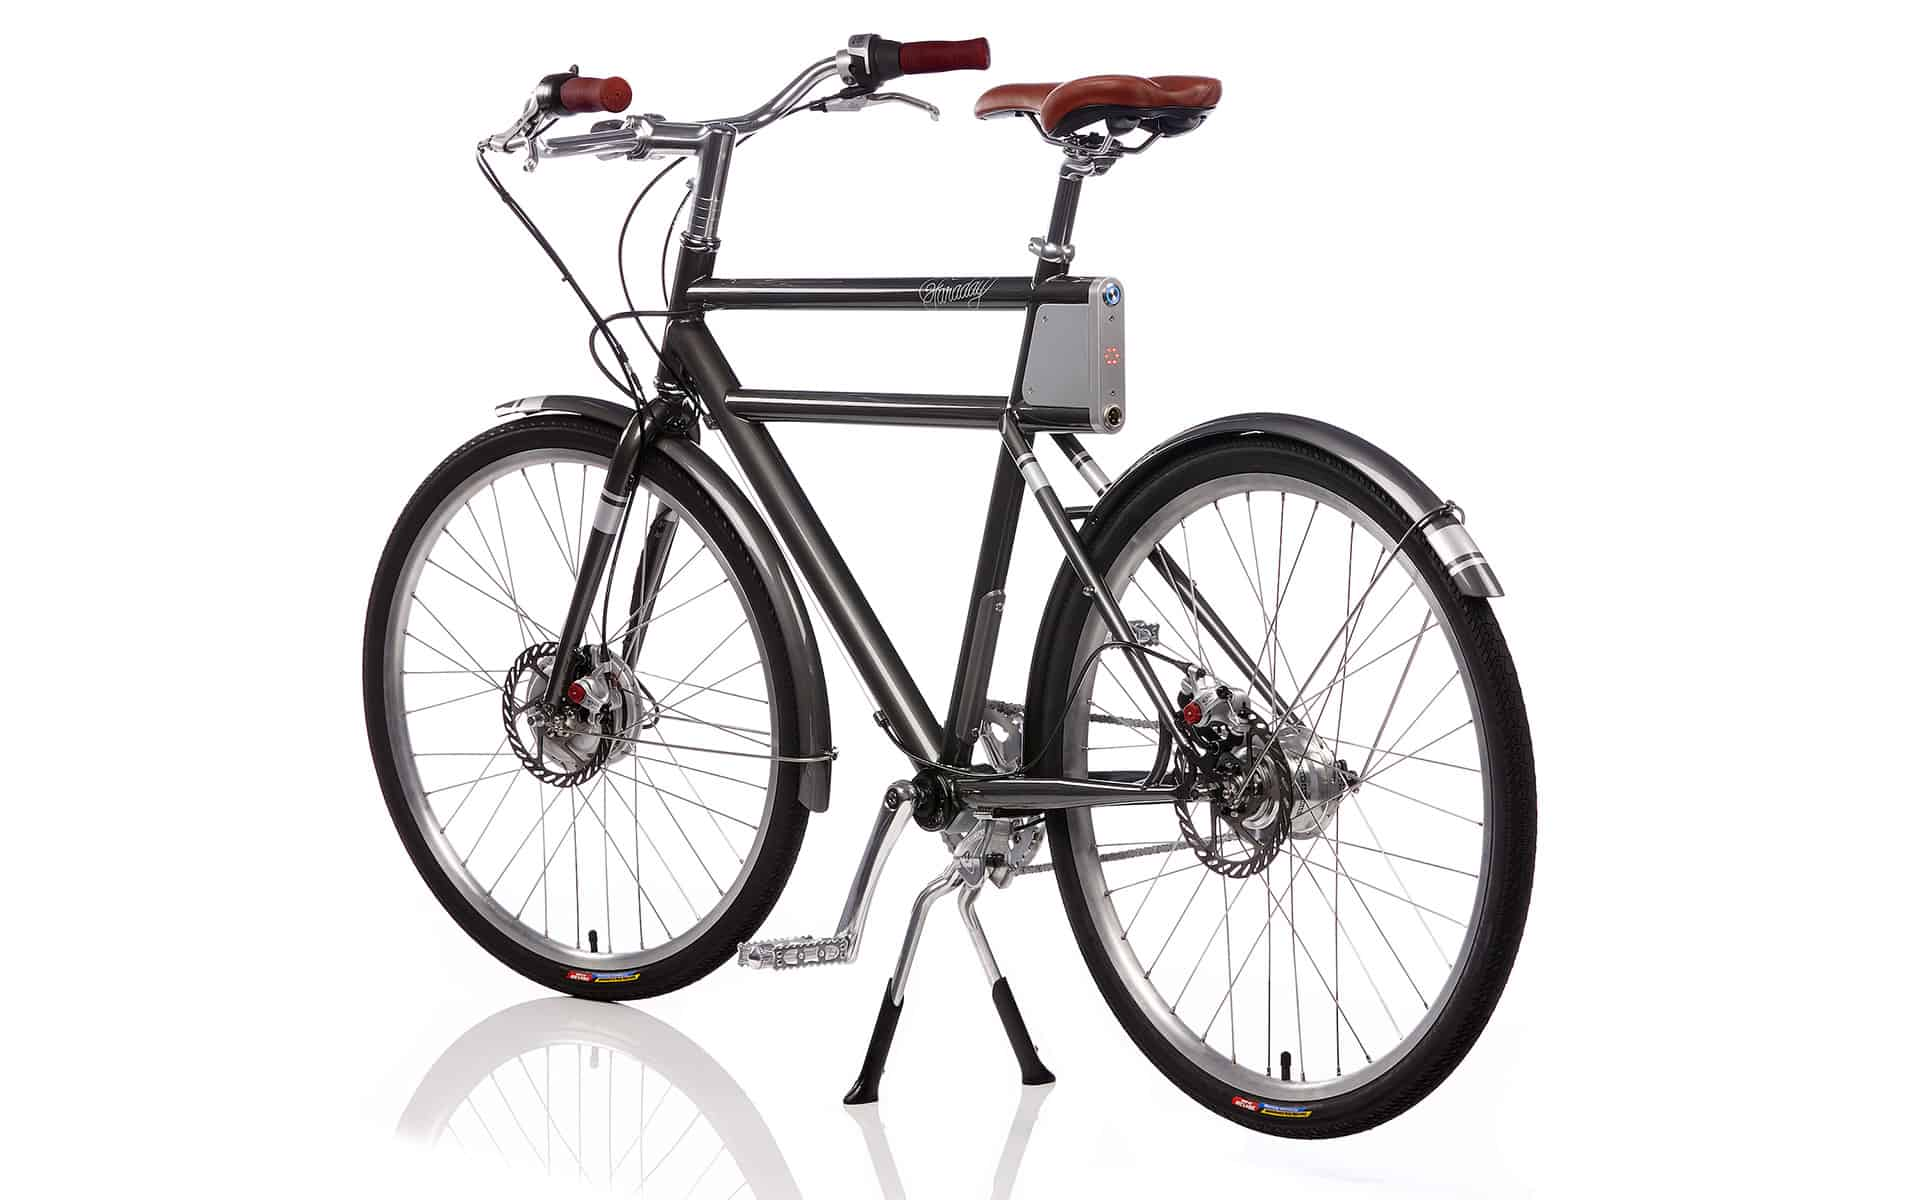 Faraday Porteur S Electric Bicycle